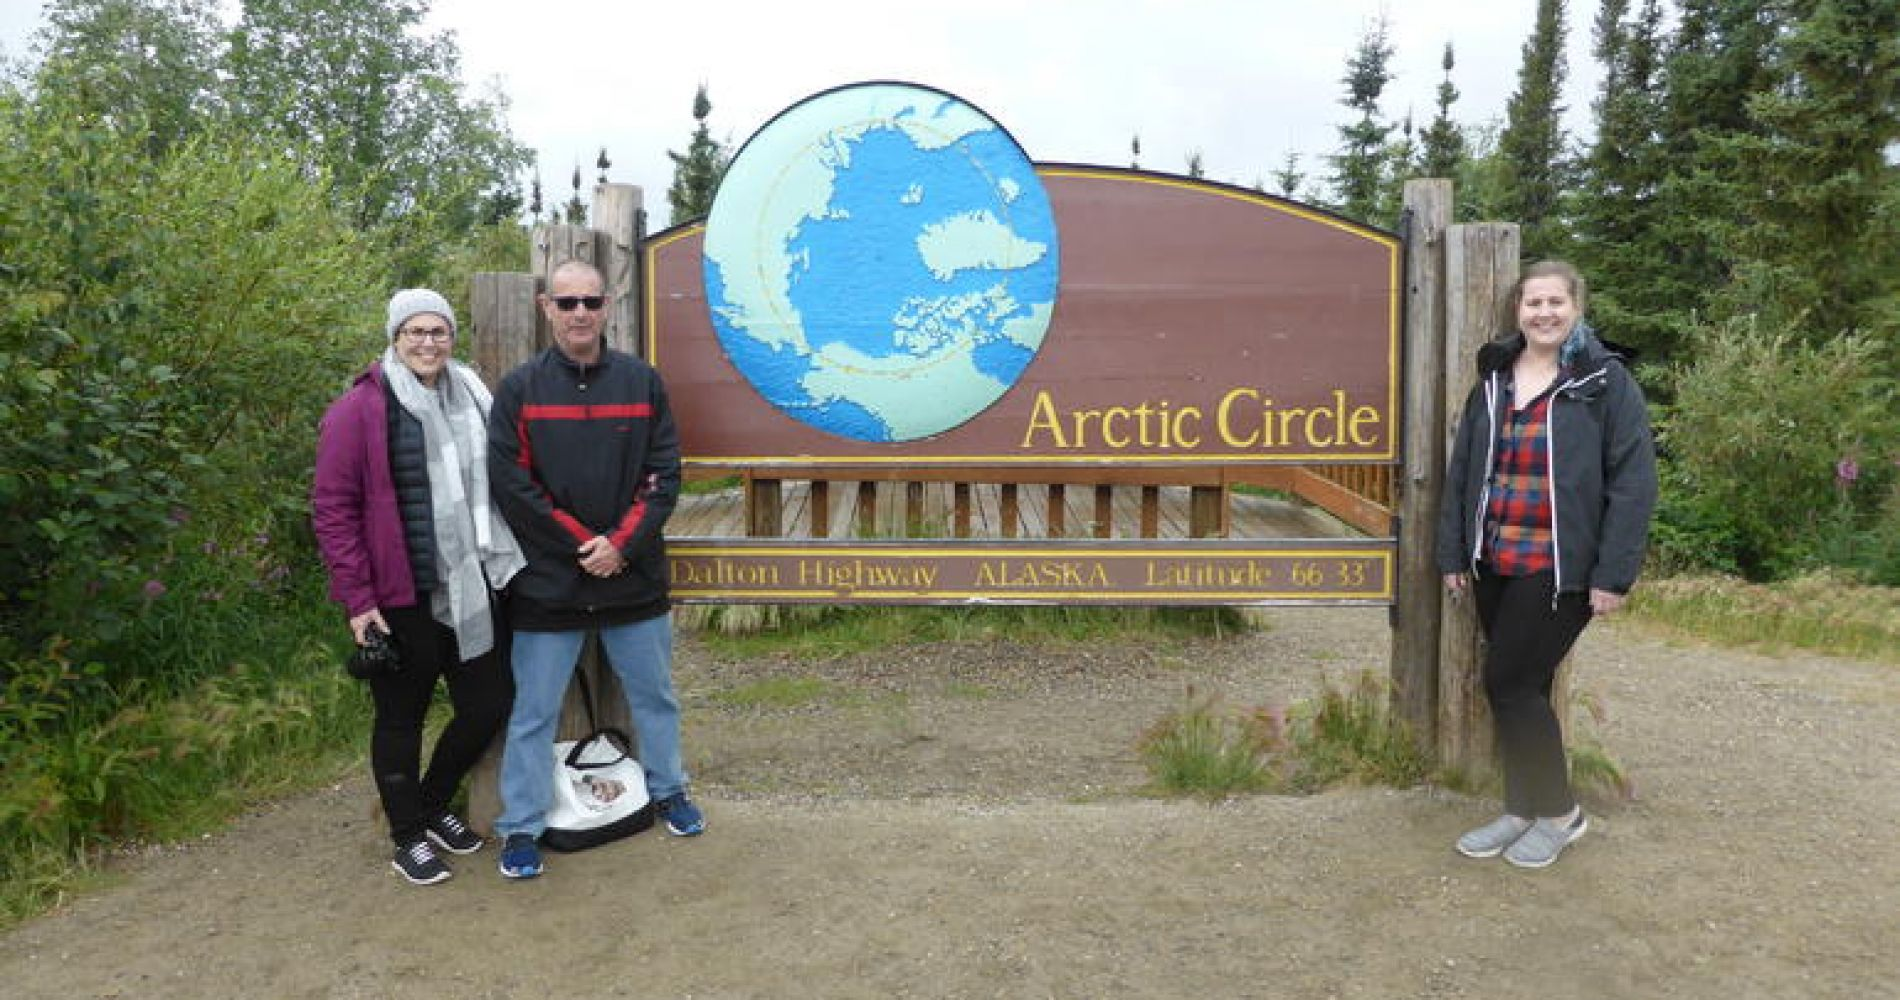 Arctic Circle Small-Group Day Trip from Fairbanks with Lunch